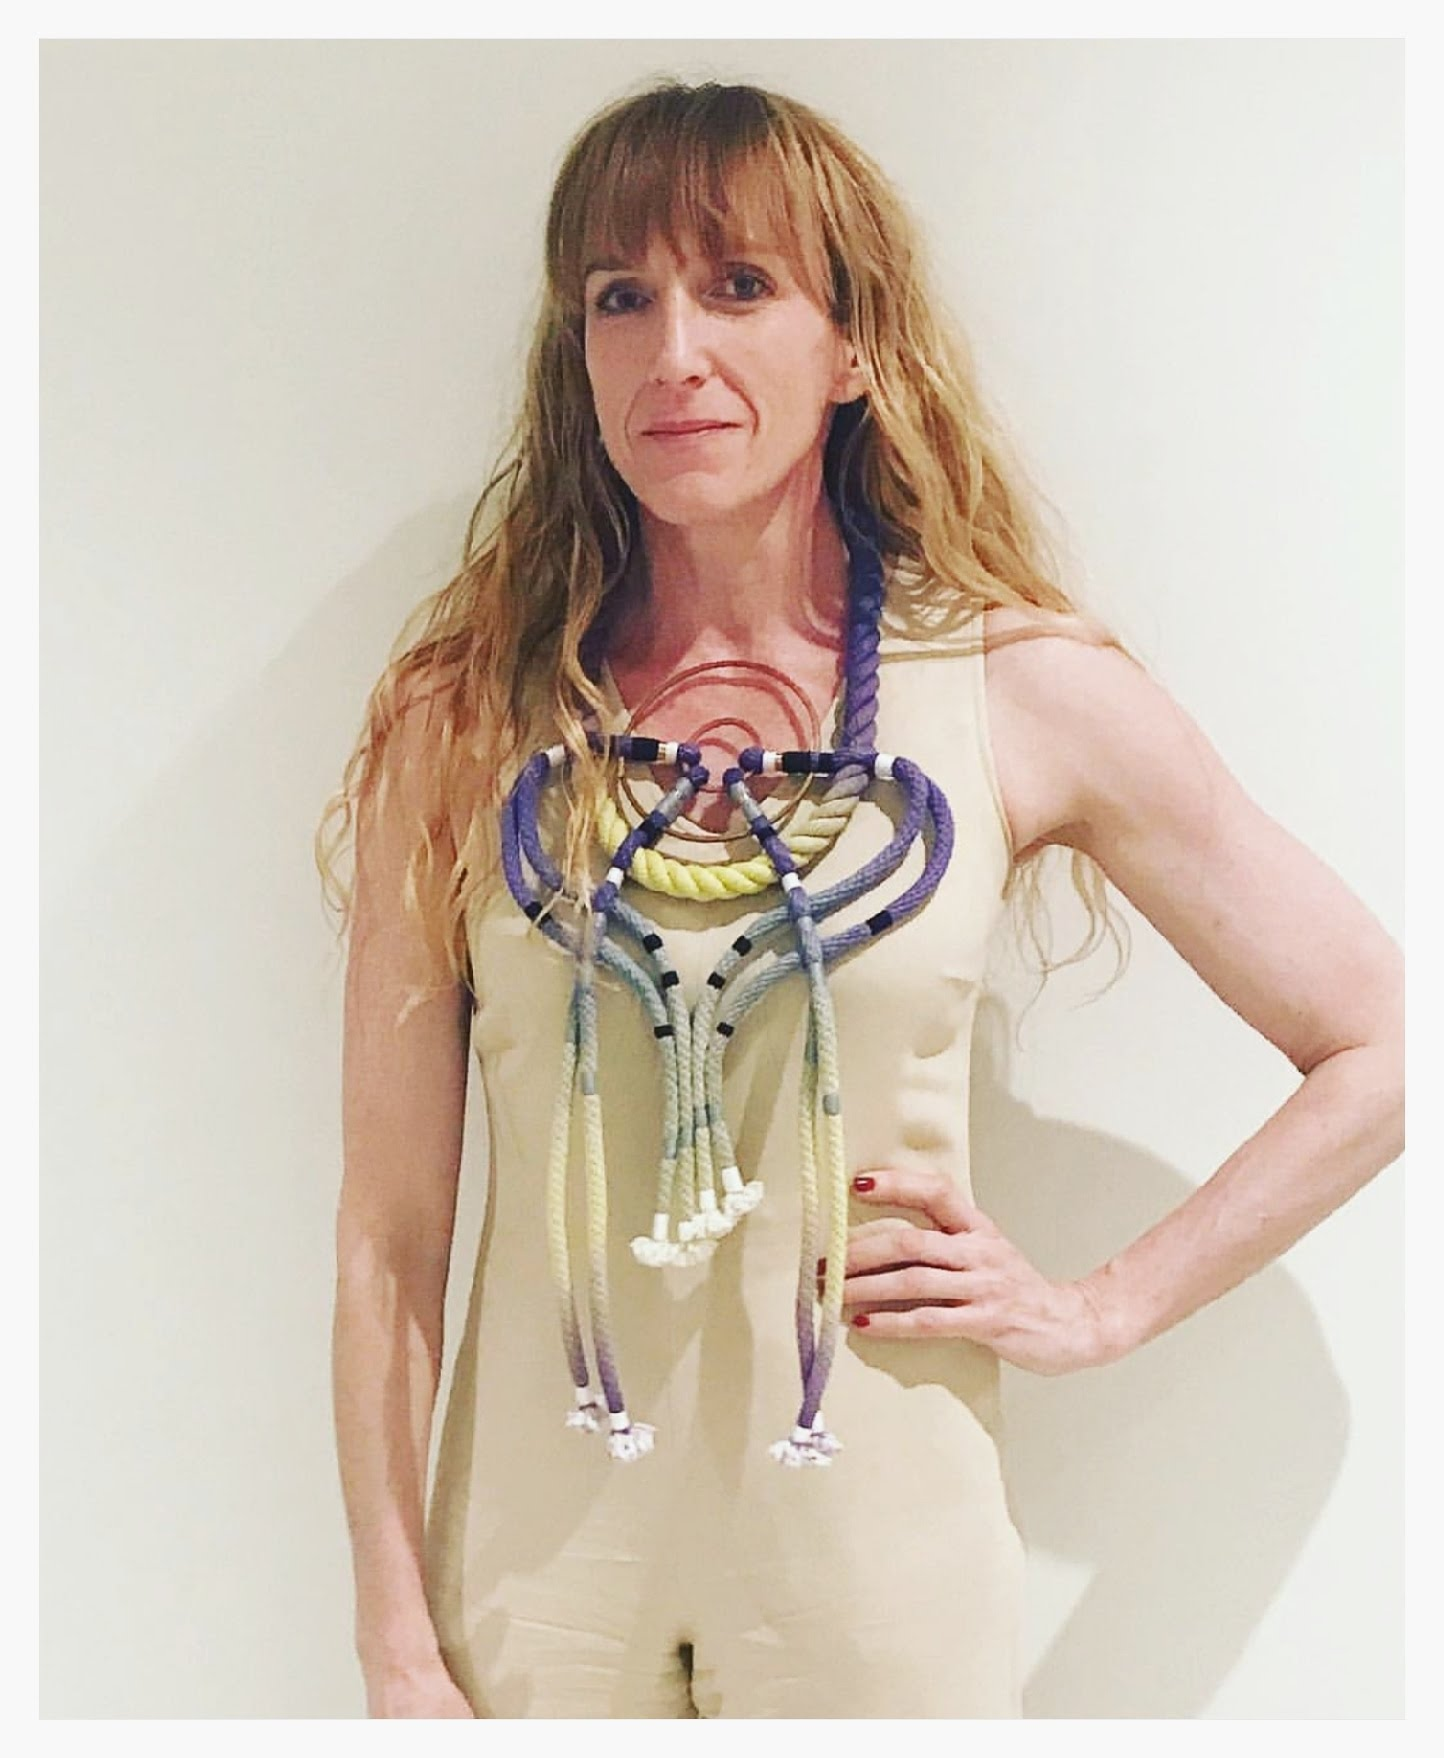 Libby Callaway wearing her FFFFFF necklace at the Keep Shop/Neon Zinn pop-up.